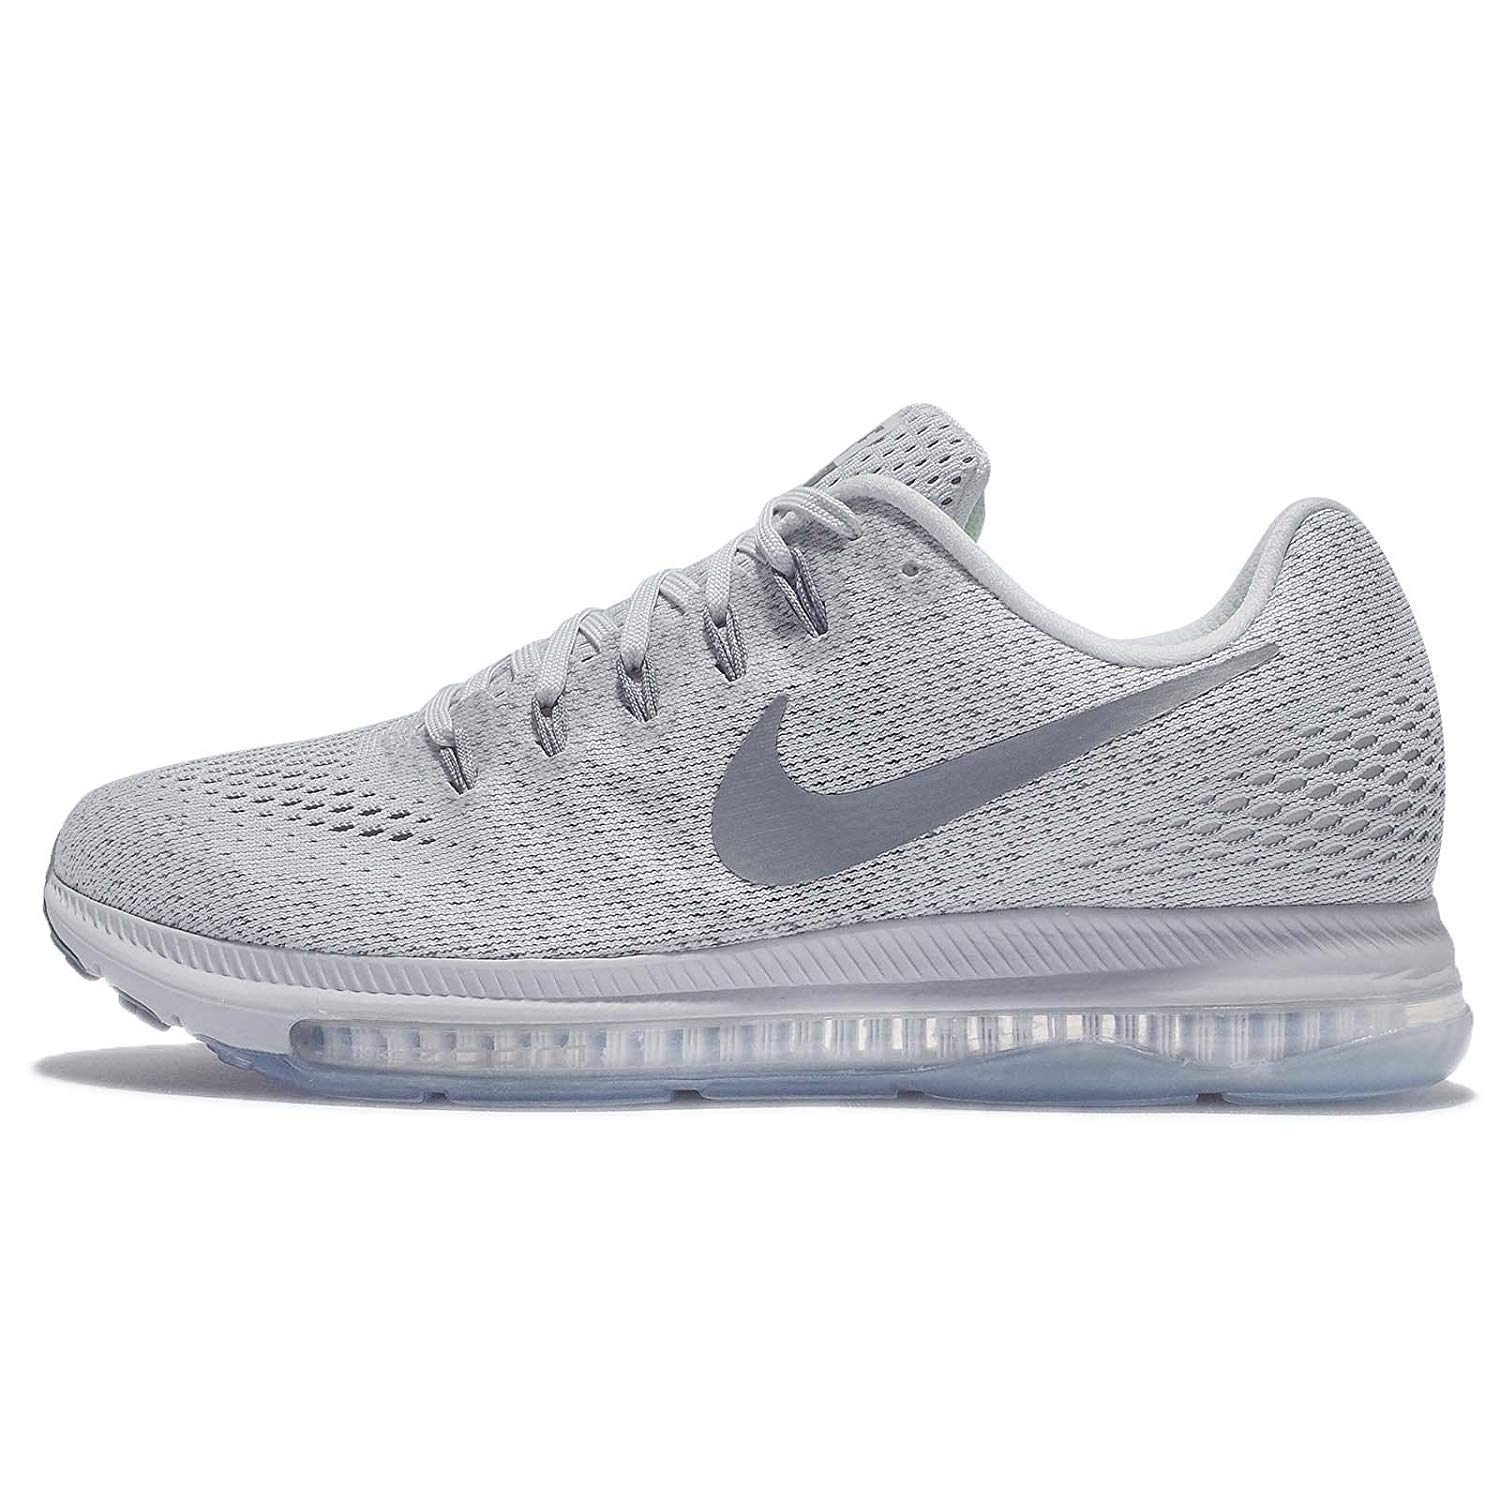 Nike Wmns Nike Zoom Low All Out Low Zoom - pure platinum cool grau-wolf g Größe 8.5 1a9fe6